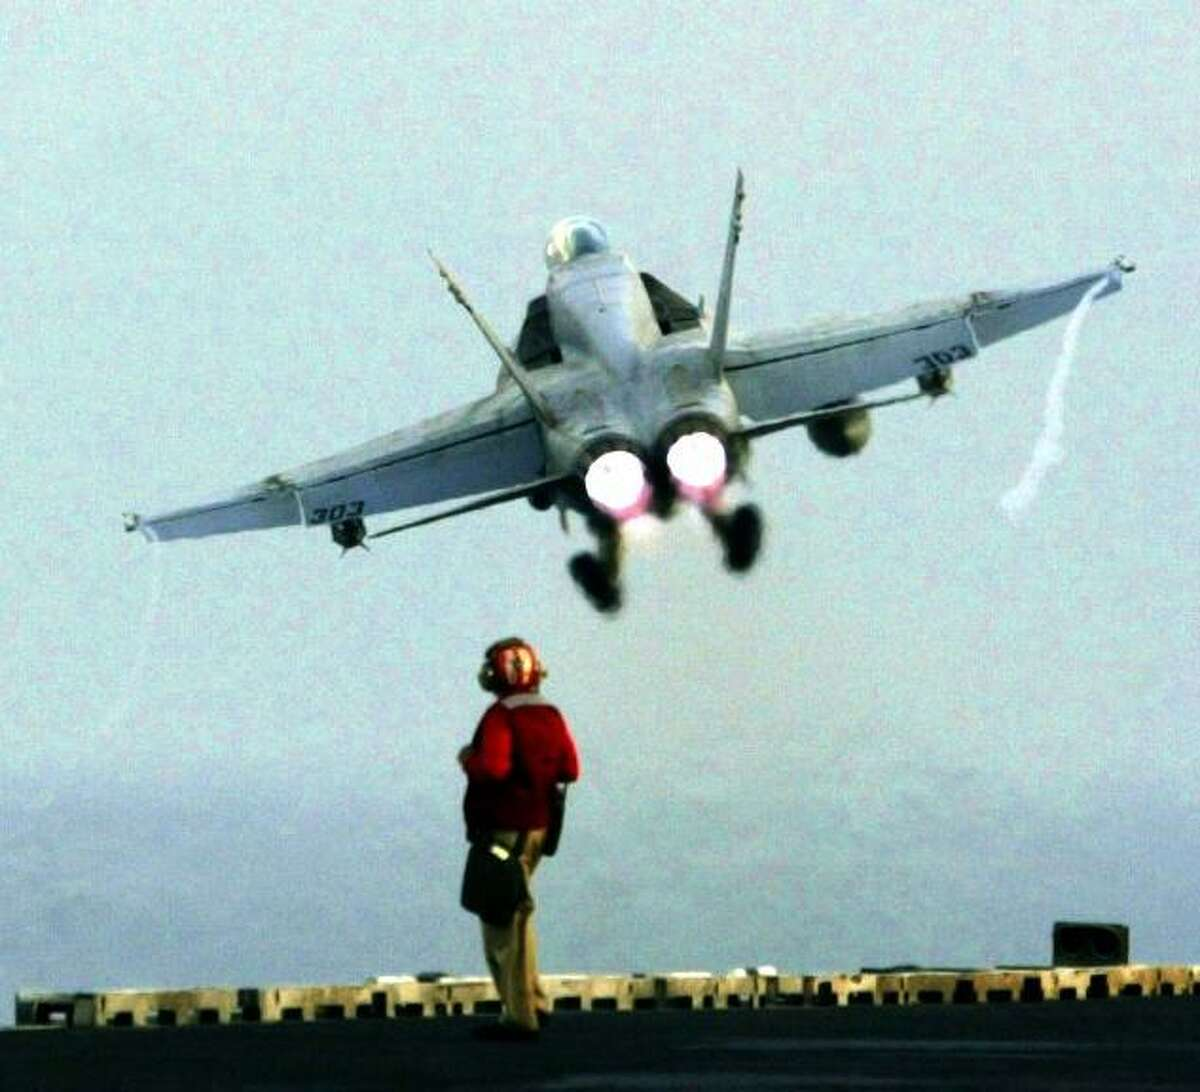 ABOARD THE AIRCRAFT CARRIER USS ABRAHAM LINCOLN (NIMITZ-CLASS) IN THE PERSIAN GULF. 3/17/2003 A flight deck weapons handler watches a F/A-18 Hornet leave the ship Wednesday afternoon. Photo by Grant M. Haller/Seattle P-I/Hearst Newspapers 3/17/2003